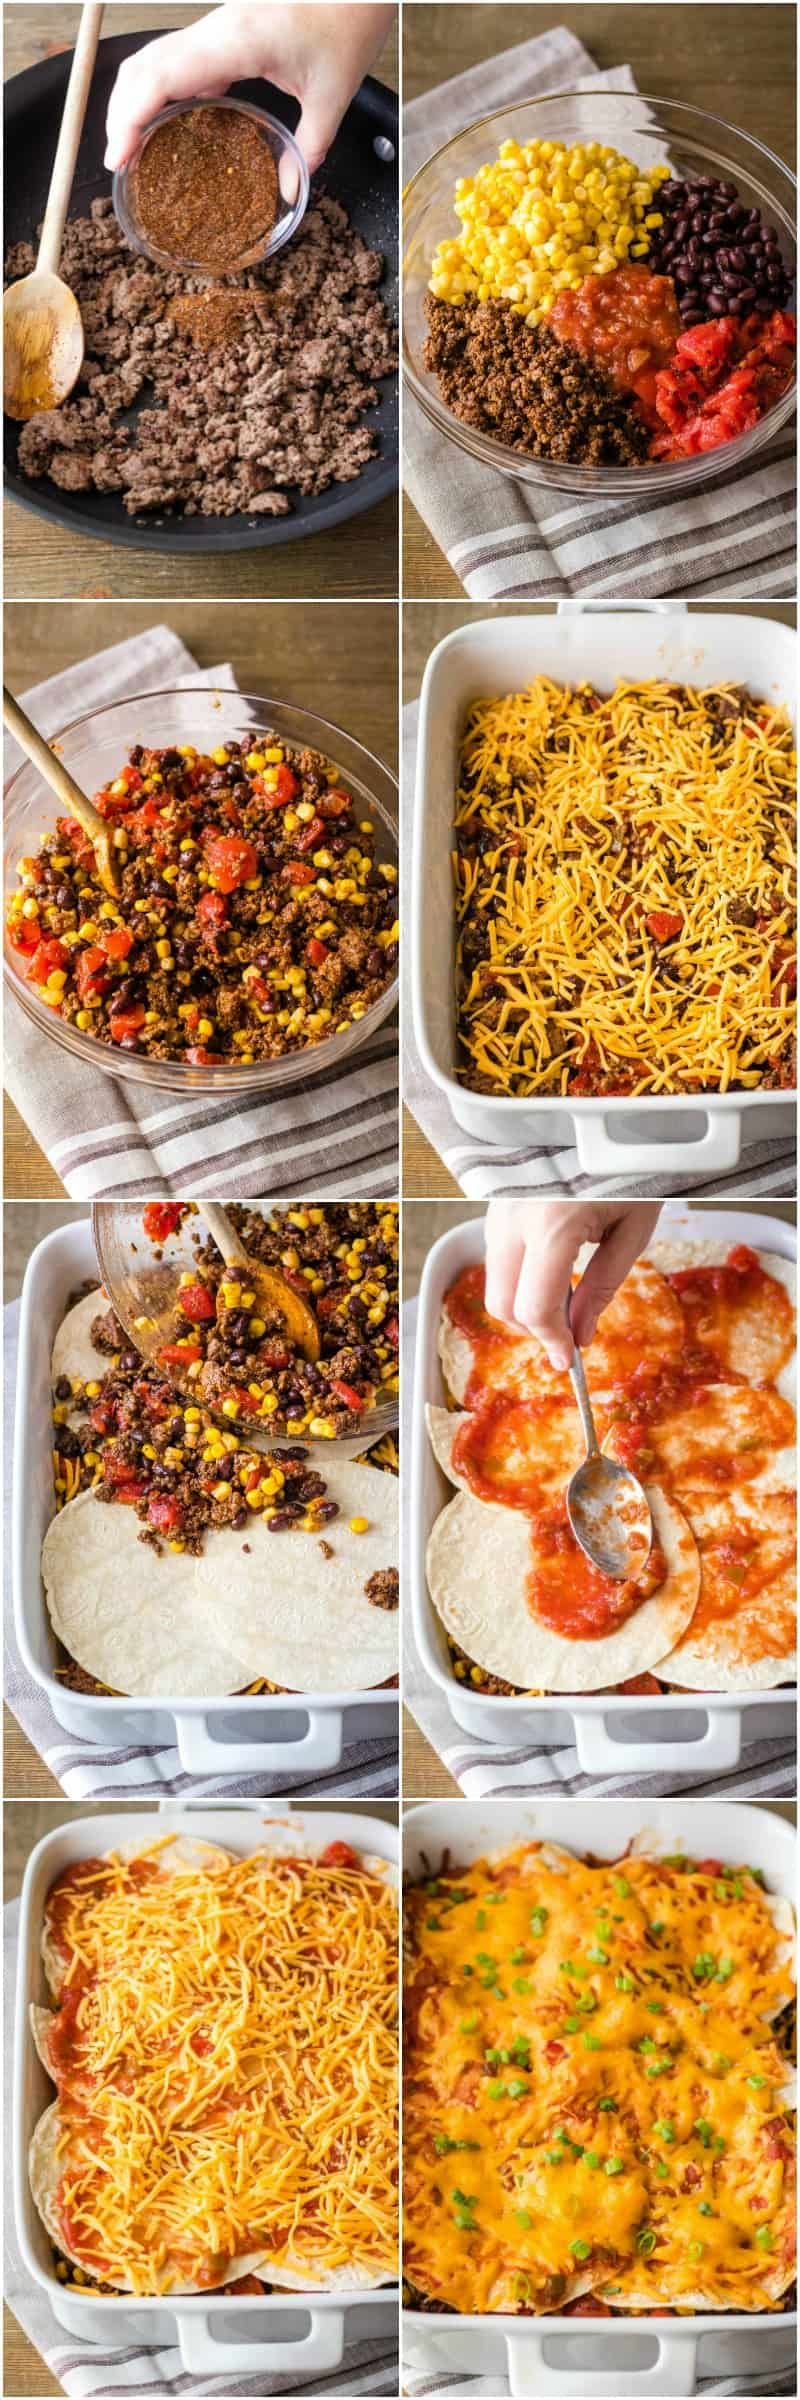 steps to make mexican lasagna recipe